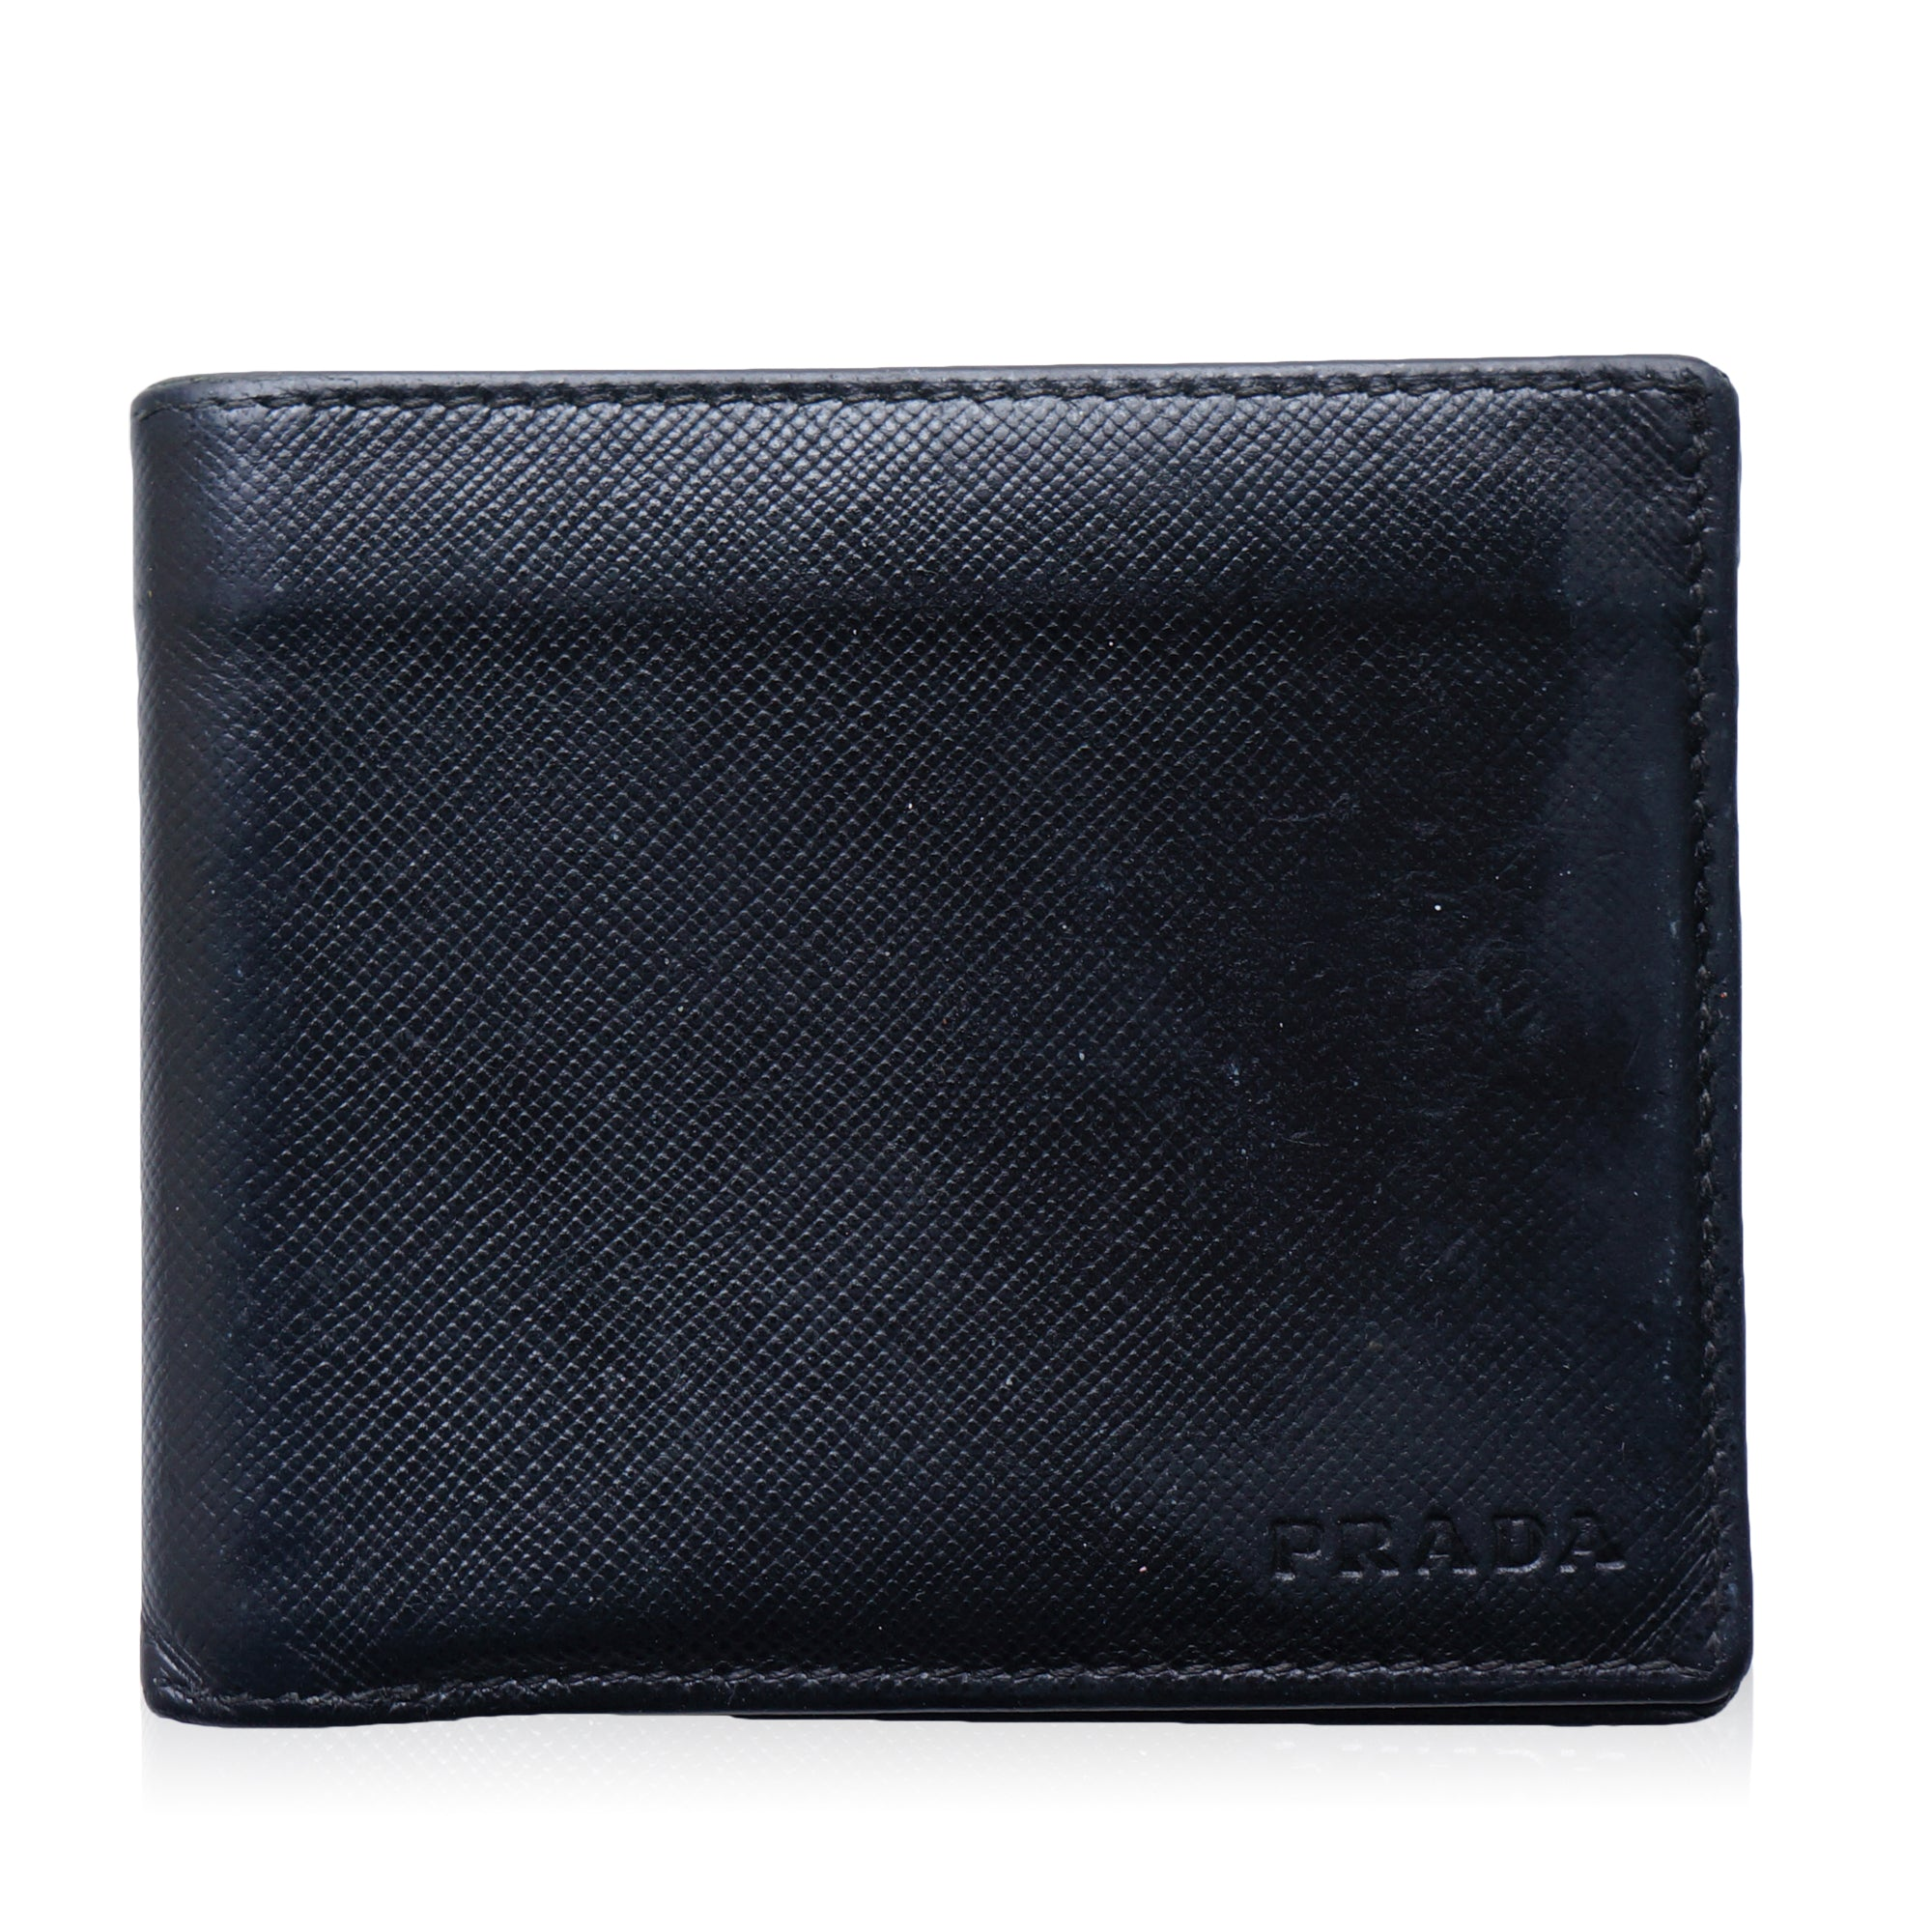 8fe952570225 PRADA SAFFIANO BIFOLD LEATHER WALLET Shop online the best value on  authentic designer used preowned consignment ...